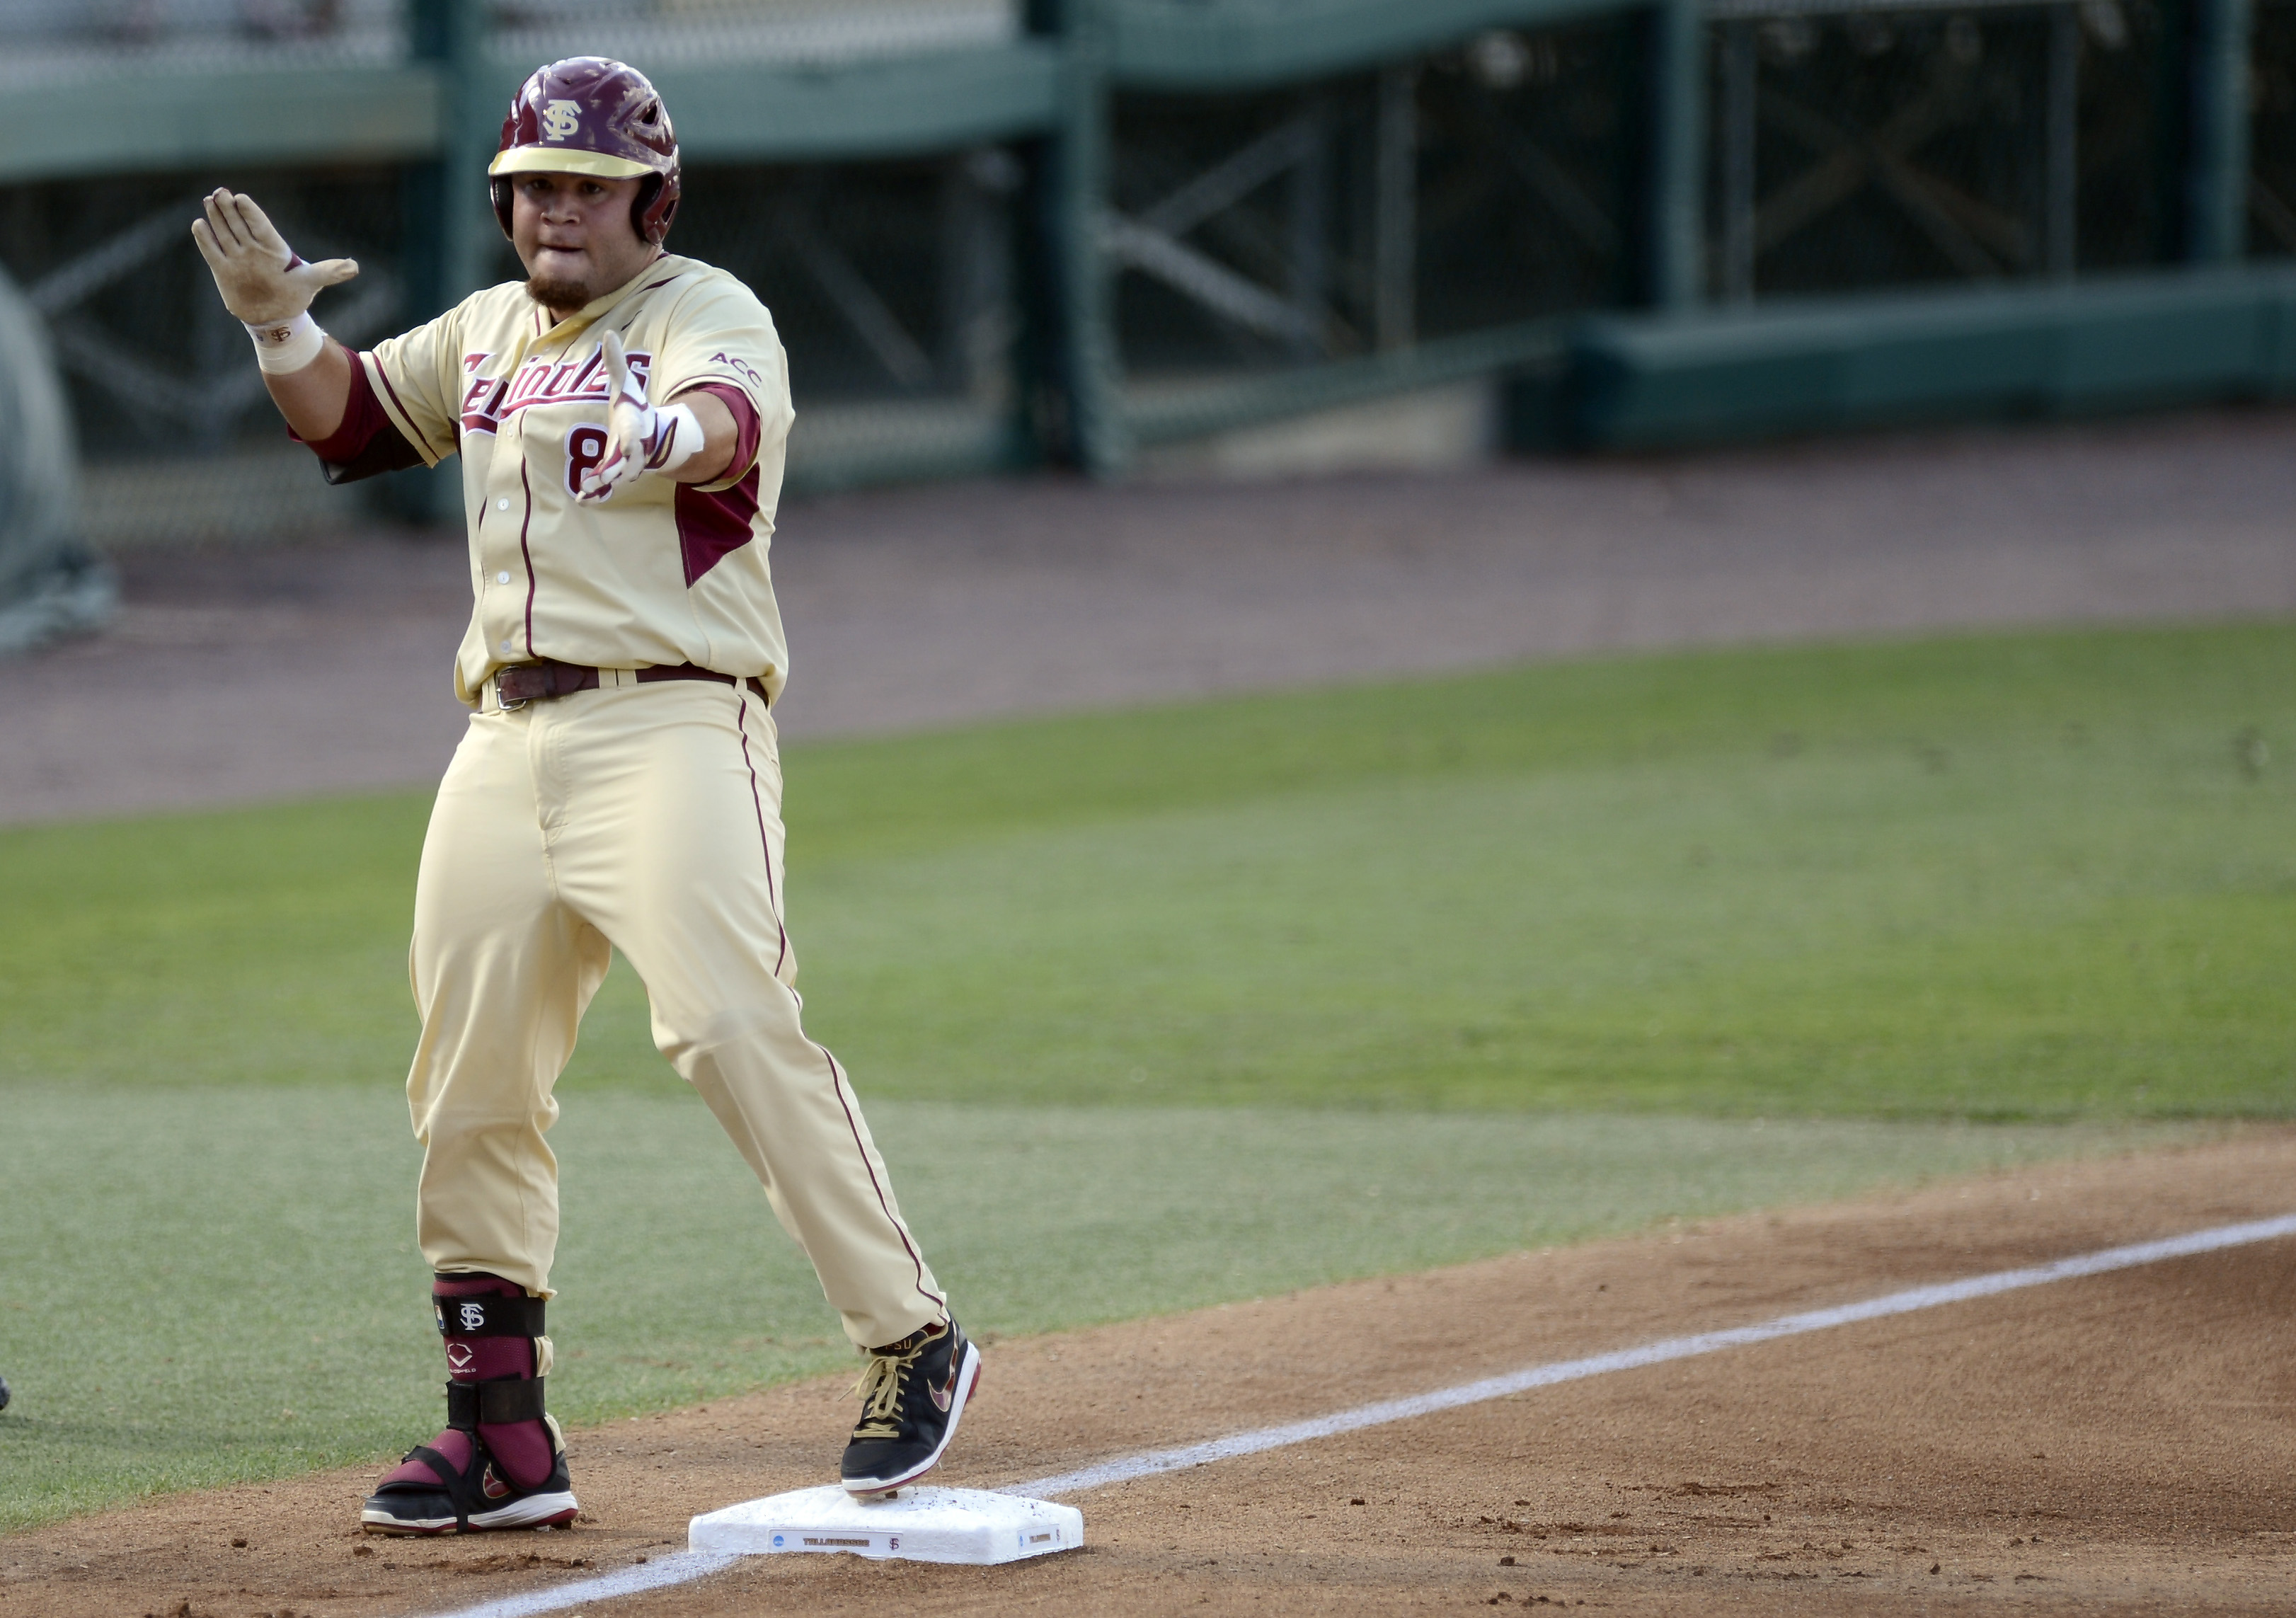 Florida State's D.J. Stewart is one of three collegians I'm watching for the Cubs' No. 1 pick this June